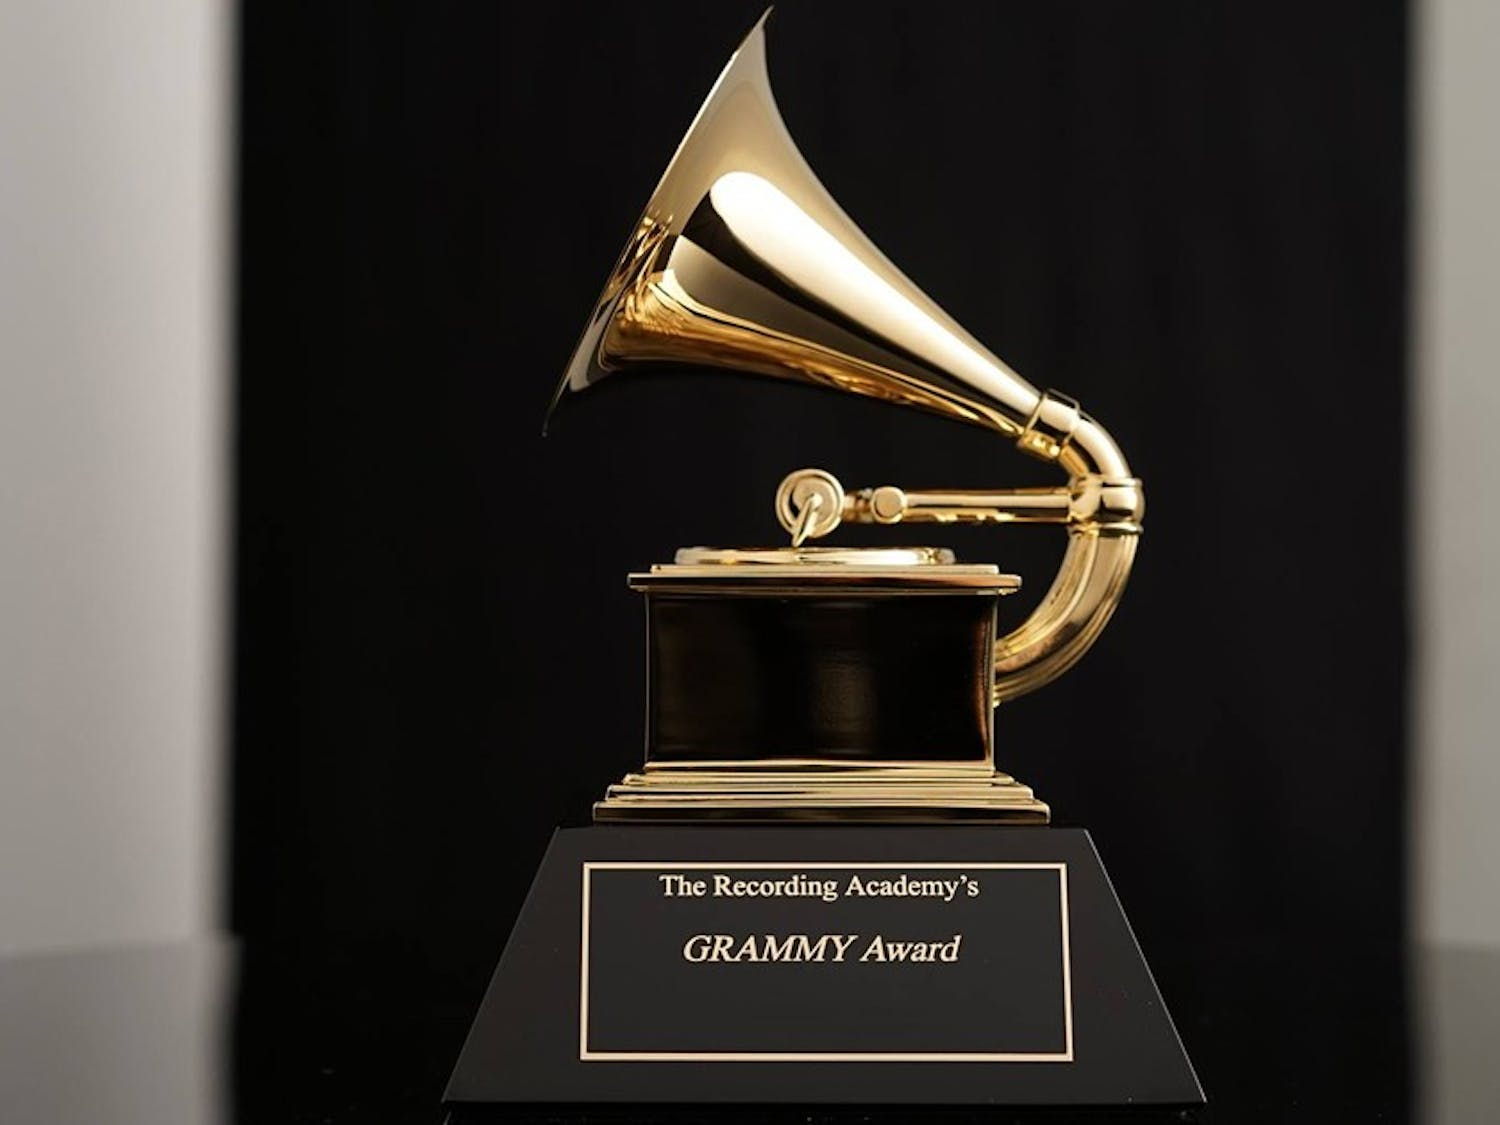 General logo for the Grammy Awards.